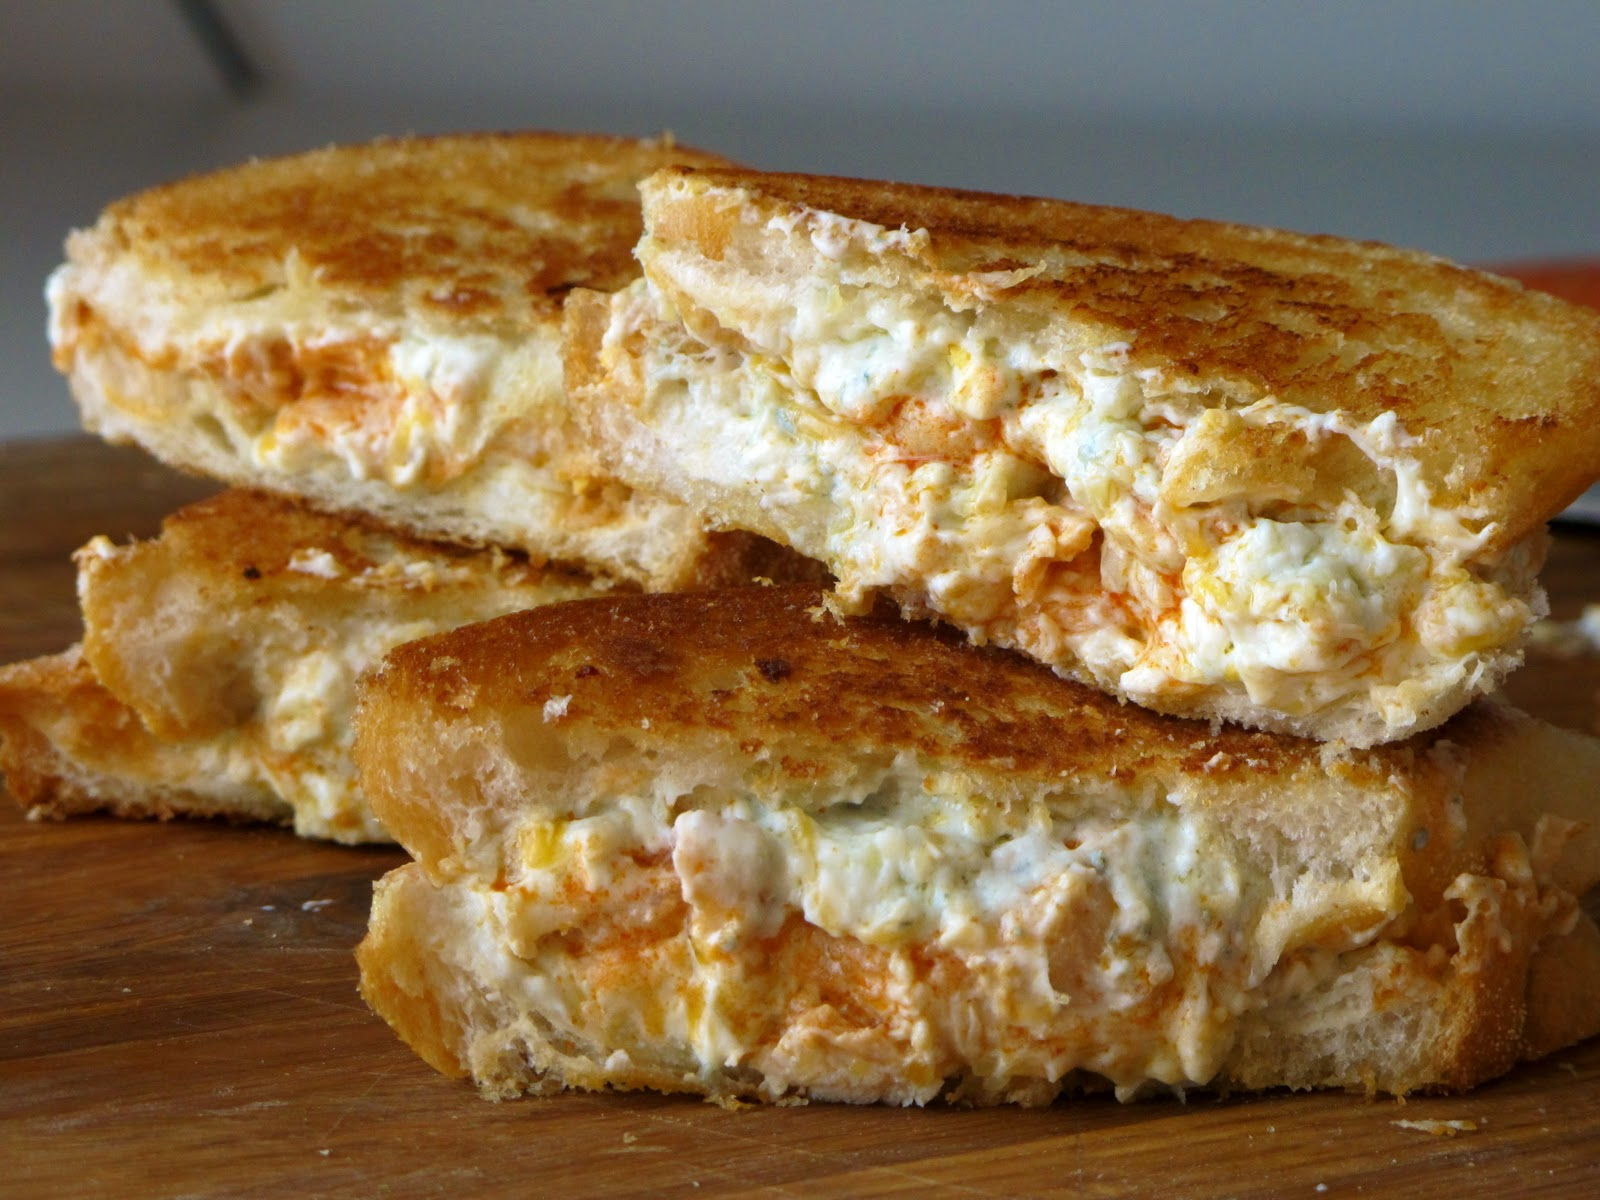 Rec n pic buffalo chicken grilled cheese sandwich oh boy for Buffalo chicken sandwich recipe grilled